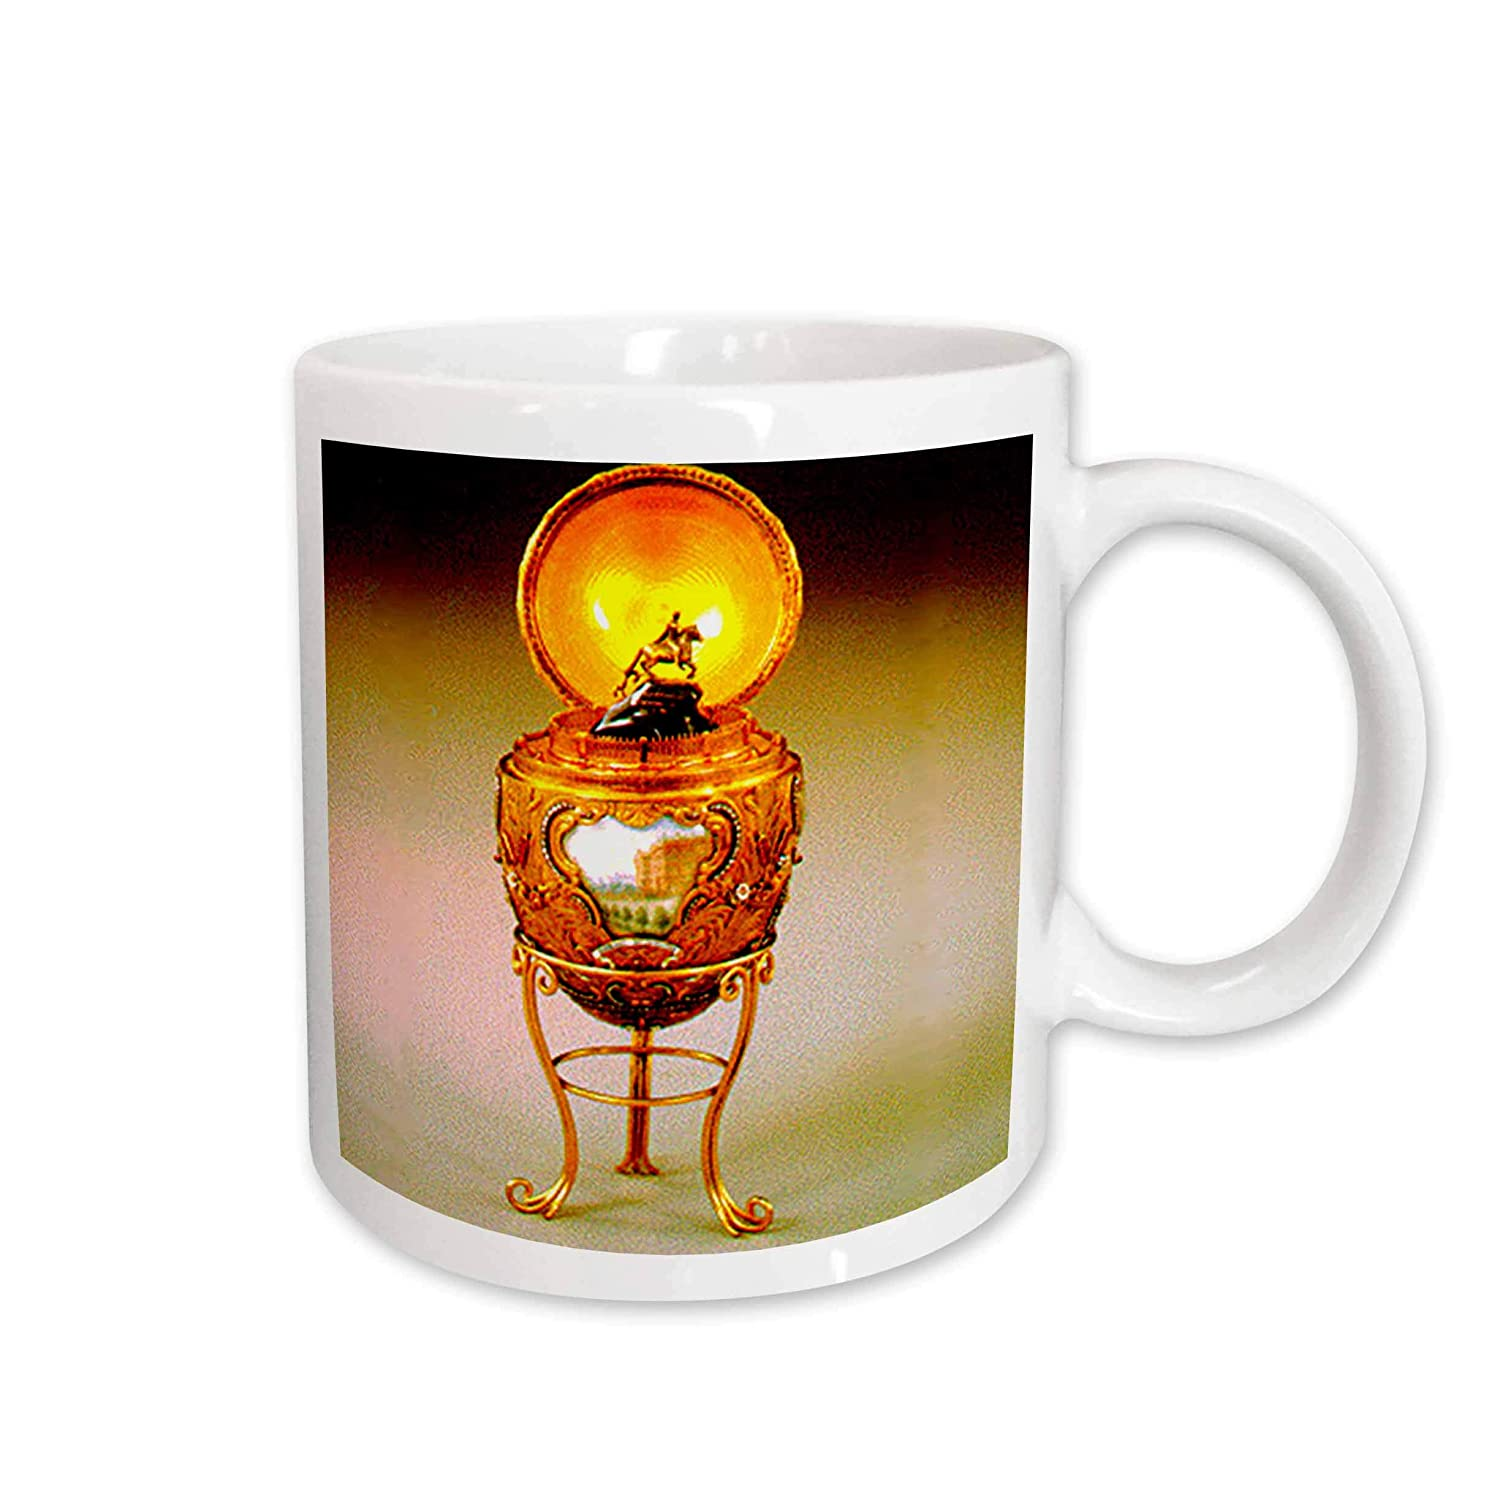 Buy 3drose Picture Faberge Egg Peter The Great Ceramic Mug 11 Ounce Online At Low Prices In India Amazon In